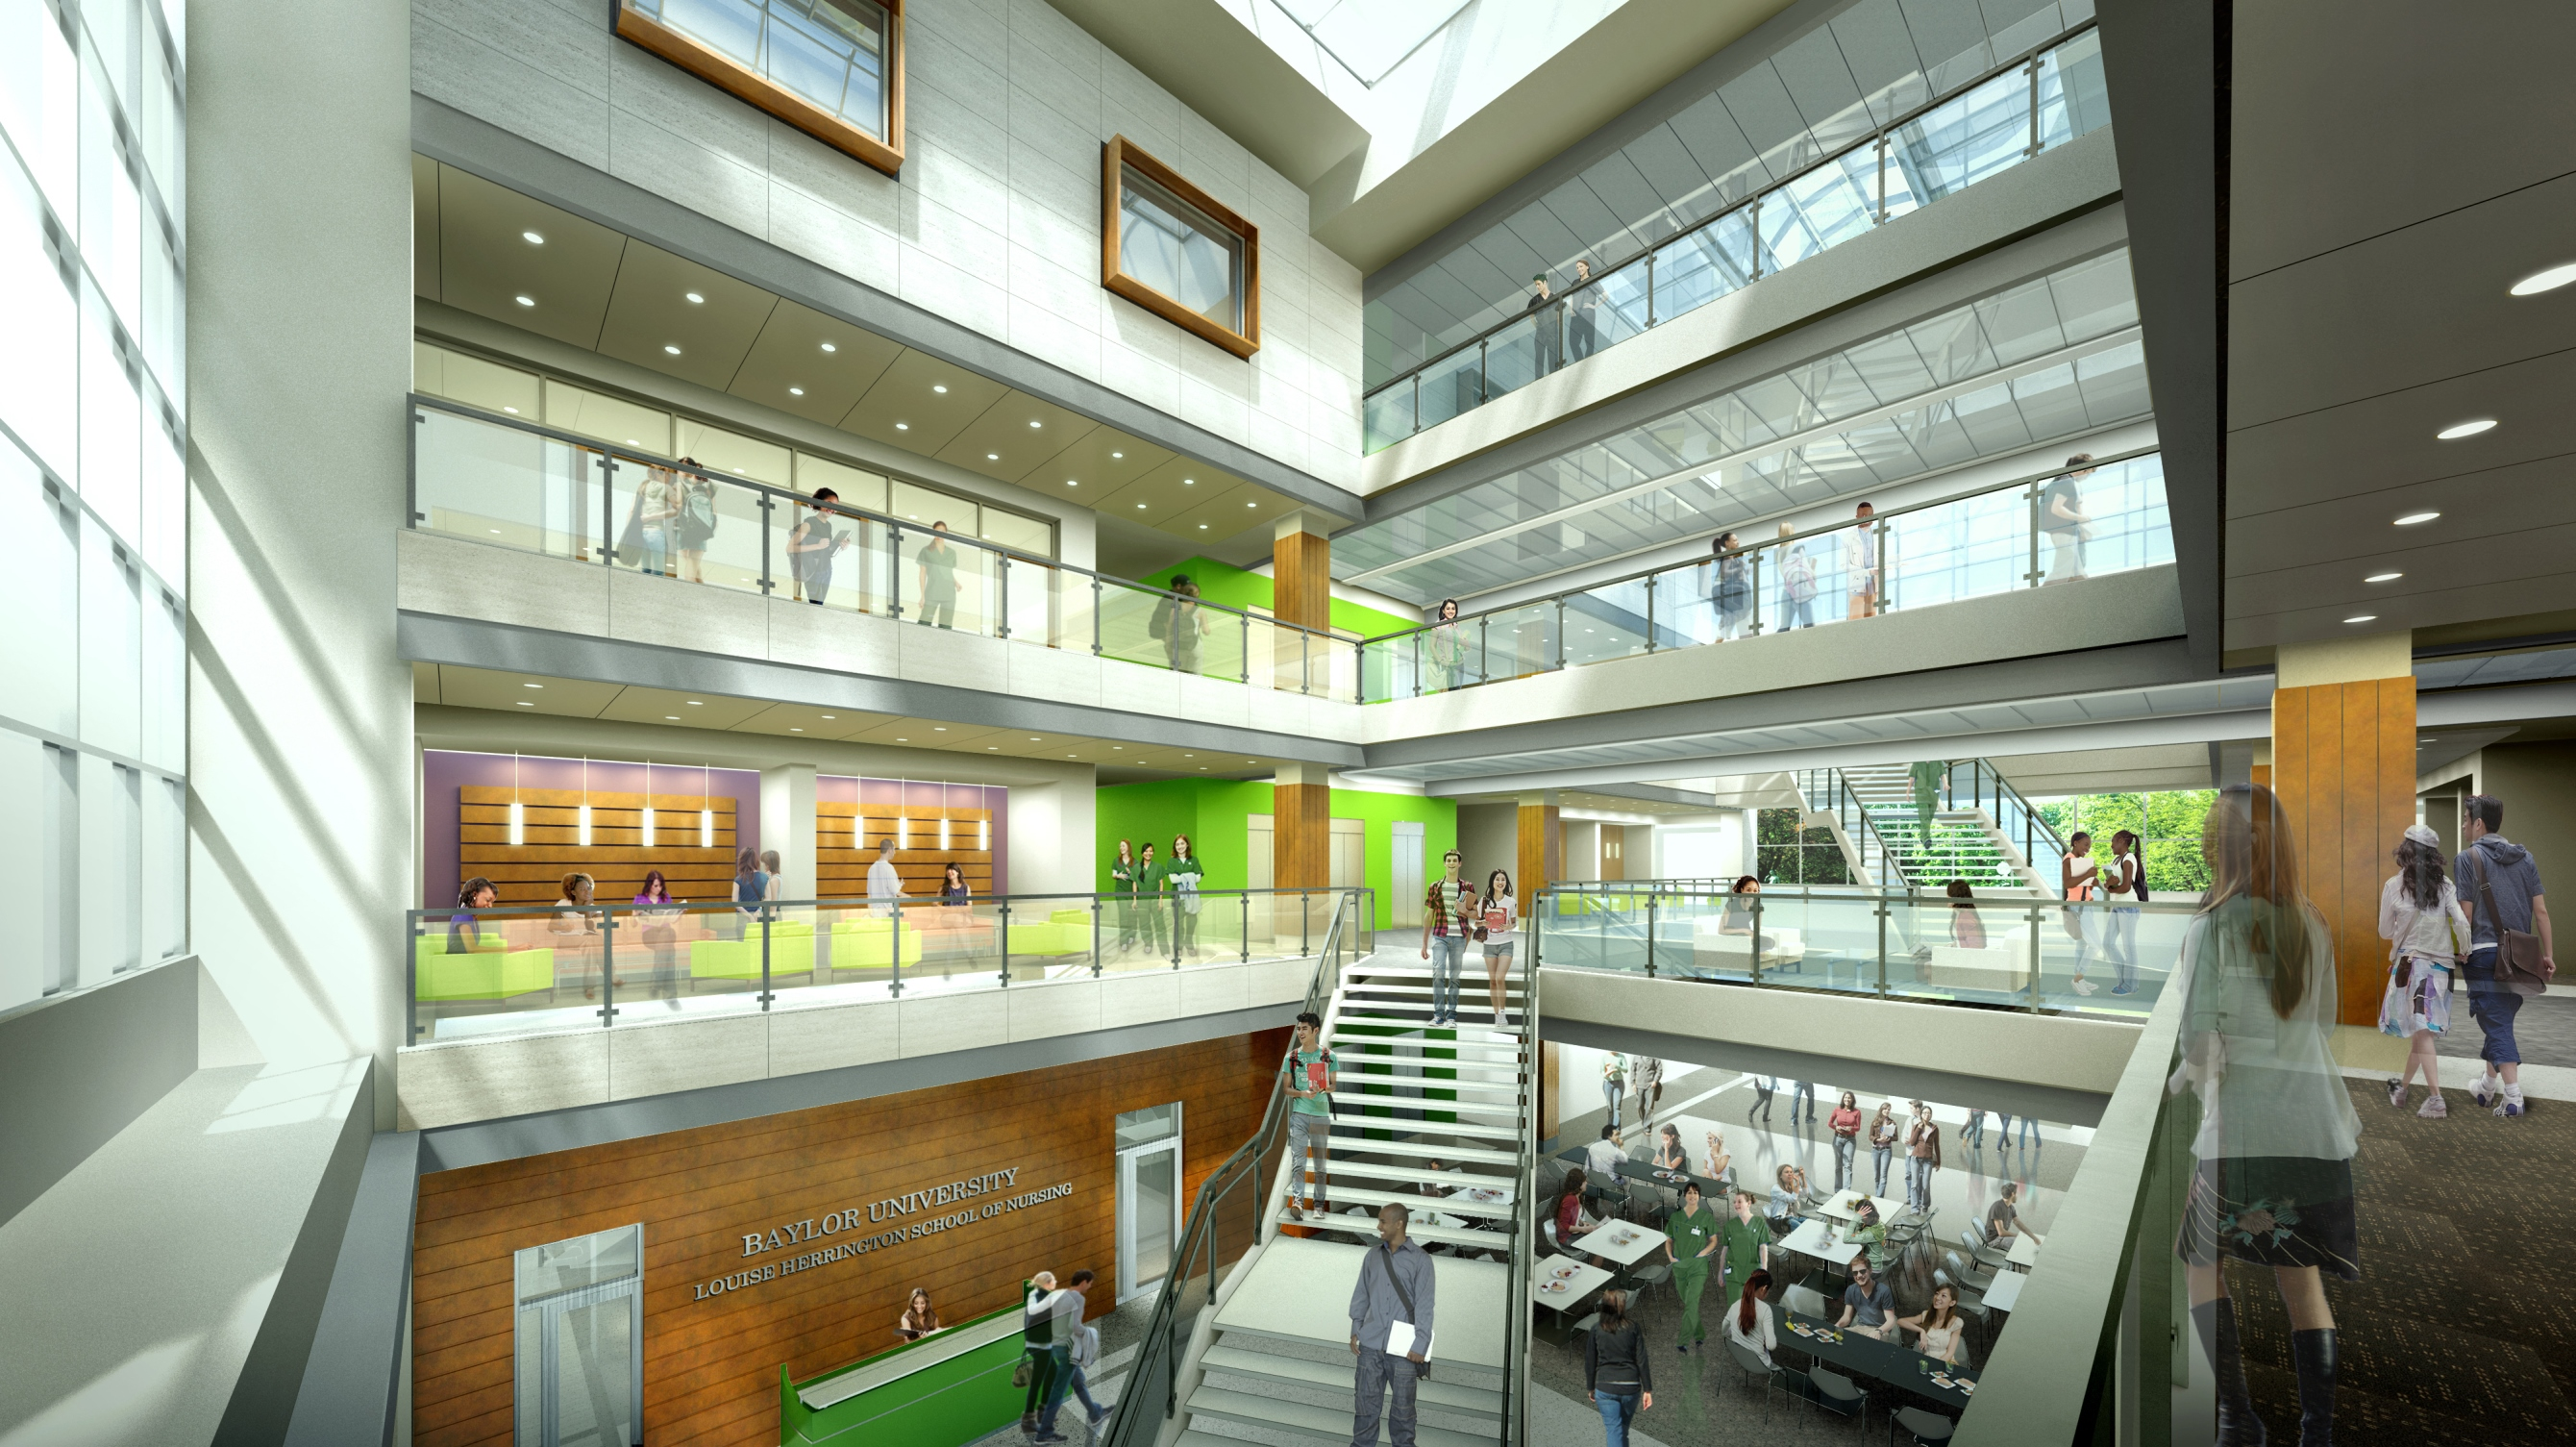 Baylor university nears fundraising goal for louise - Interior design schools in alabama ...